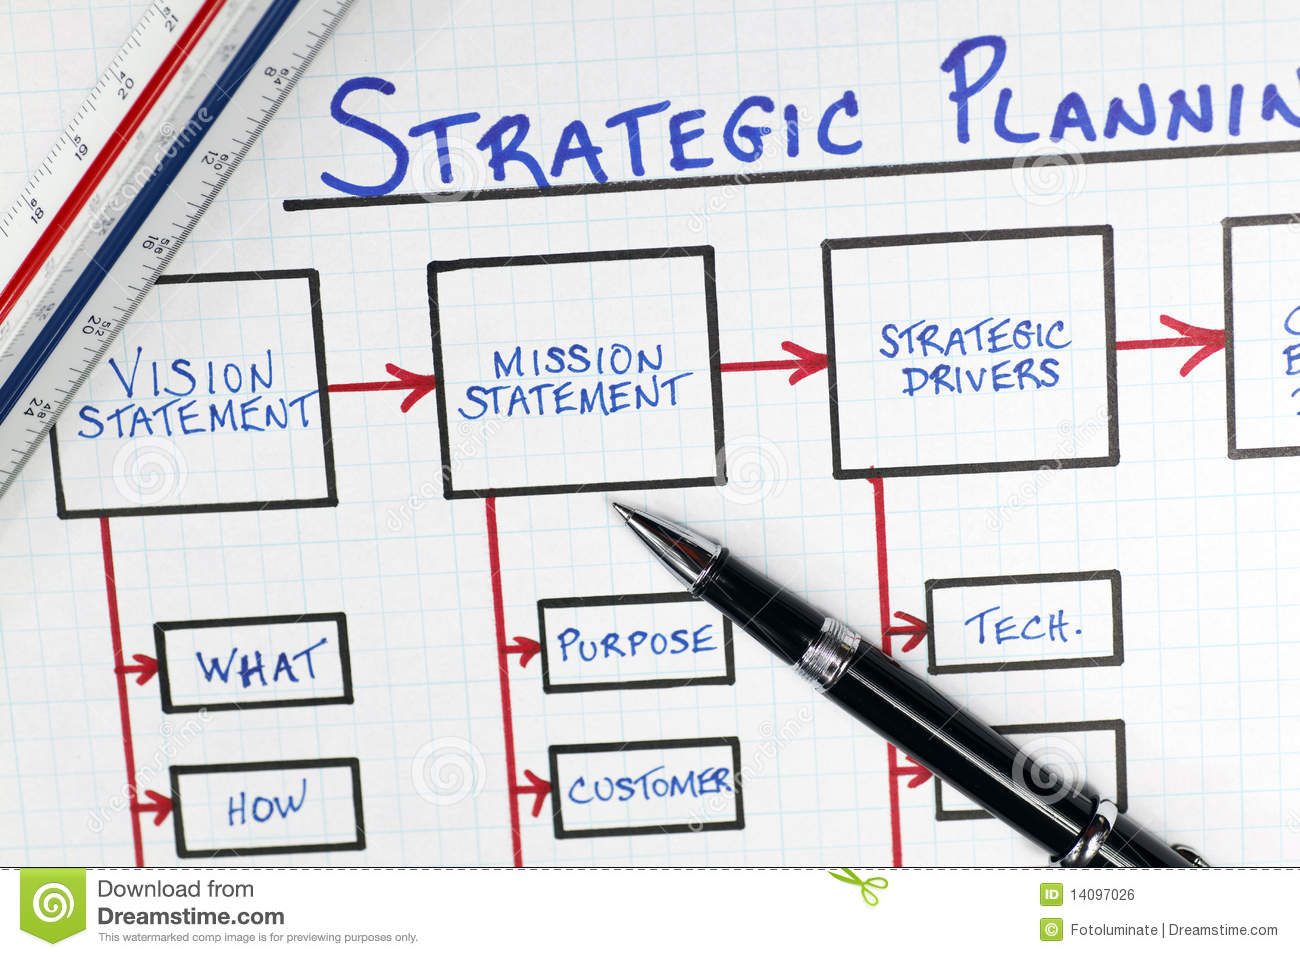 term paper on a strategic plan for an e-commerce business A strategic plan is a roadmap to grow your business,  a strategic plan is a roadmap to  they key is to first identify your 5 year or long-term.